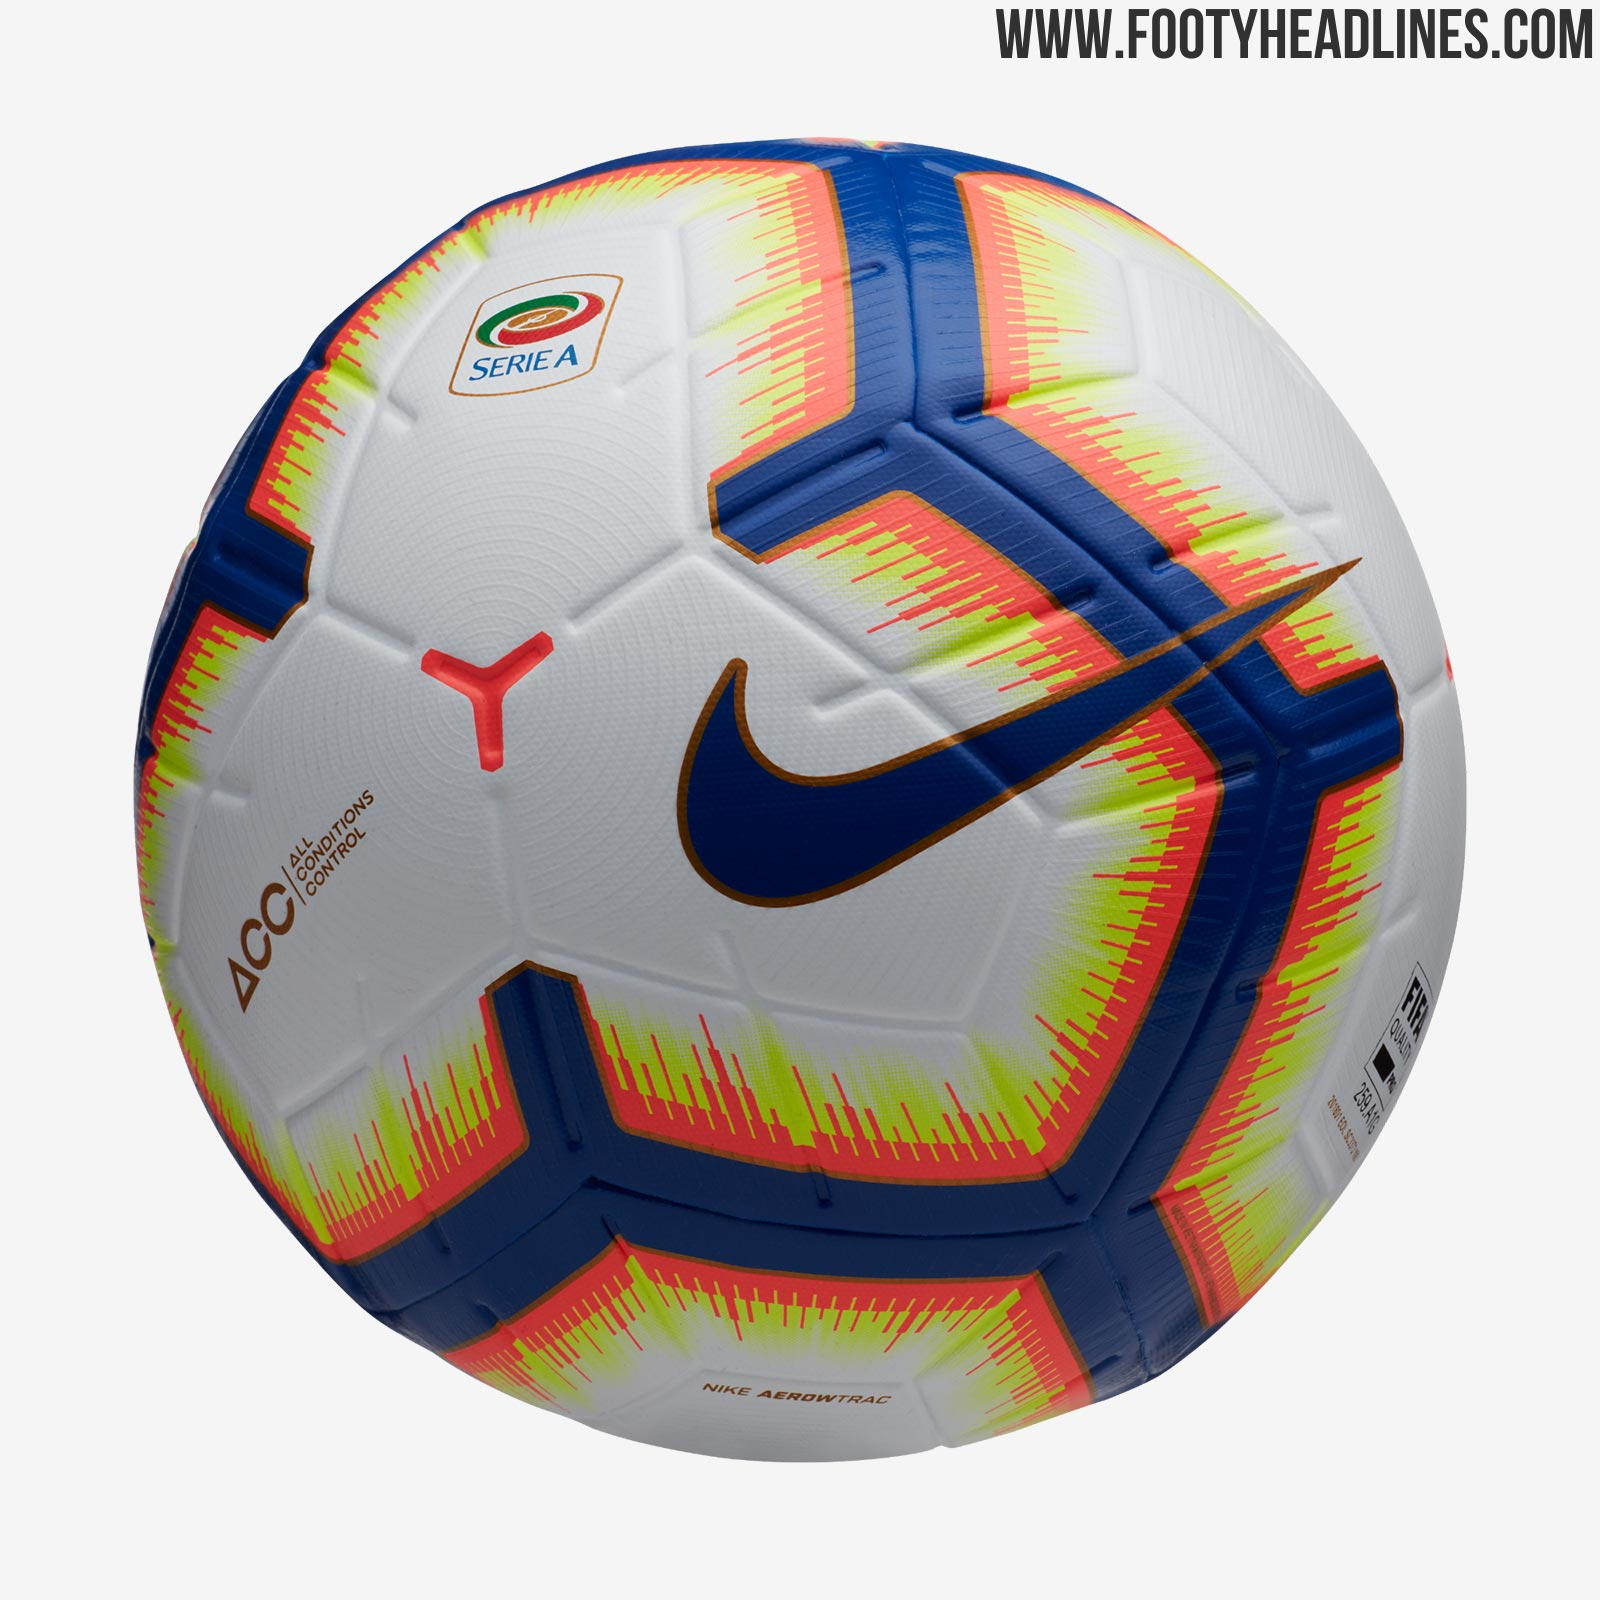 ef8cc3937e8 Nike Merlin Serie A 18-19 Official Match Ball Does Not Feature New Crest